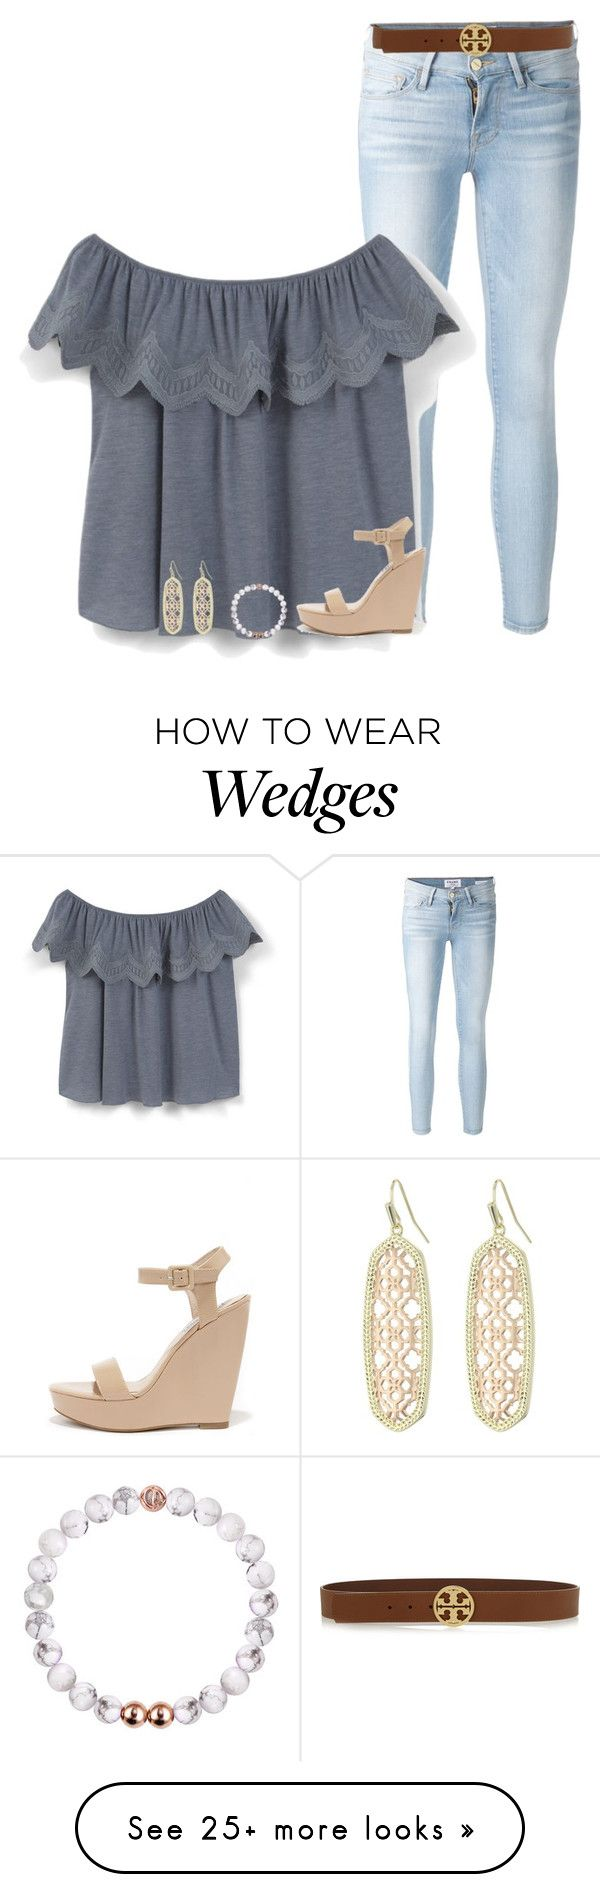 """"" by serenag123 on Polyvore featuring Frame Denim, MANGO, Steve Madden, Kendra Scott and Tory Burch"